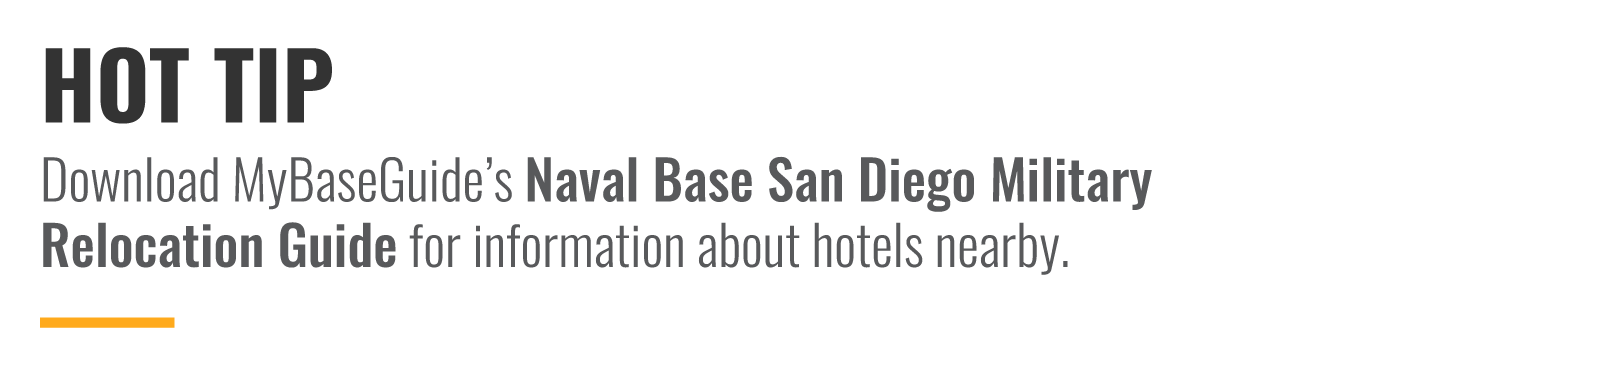 Download MyBaseGuide's Military Relocation Guide for information about hotels nearby